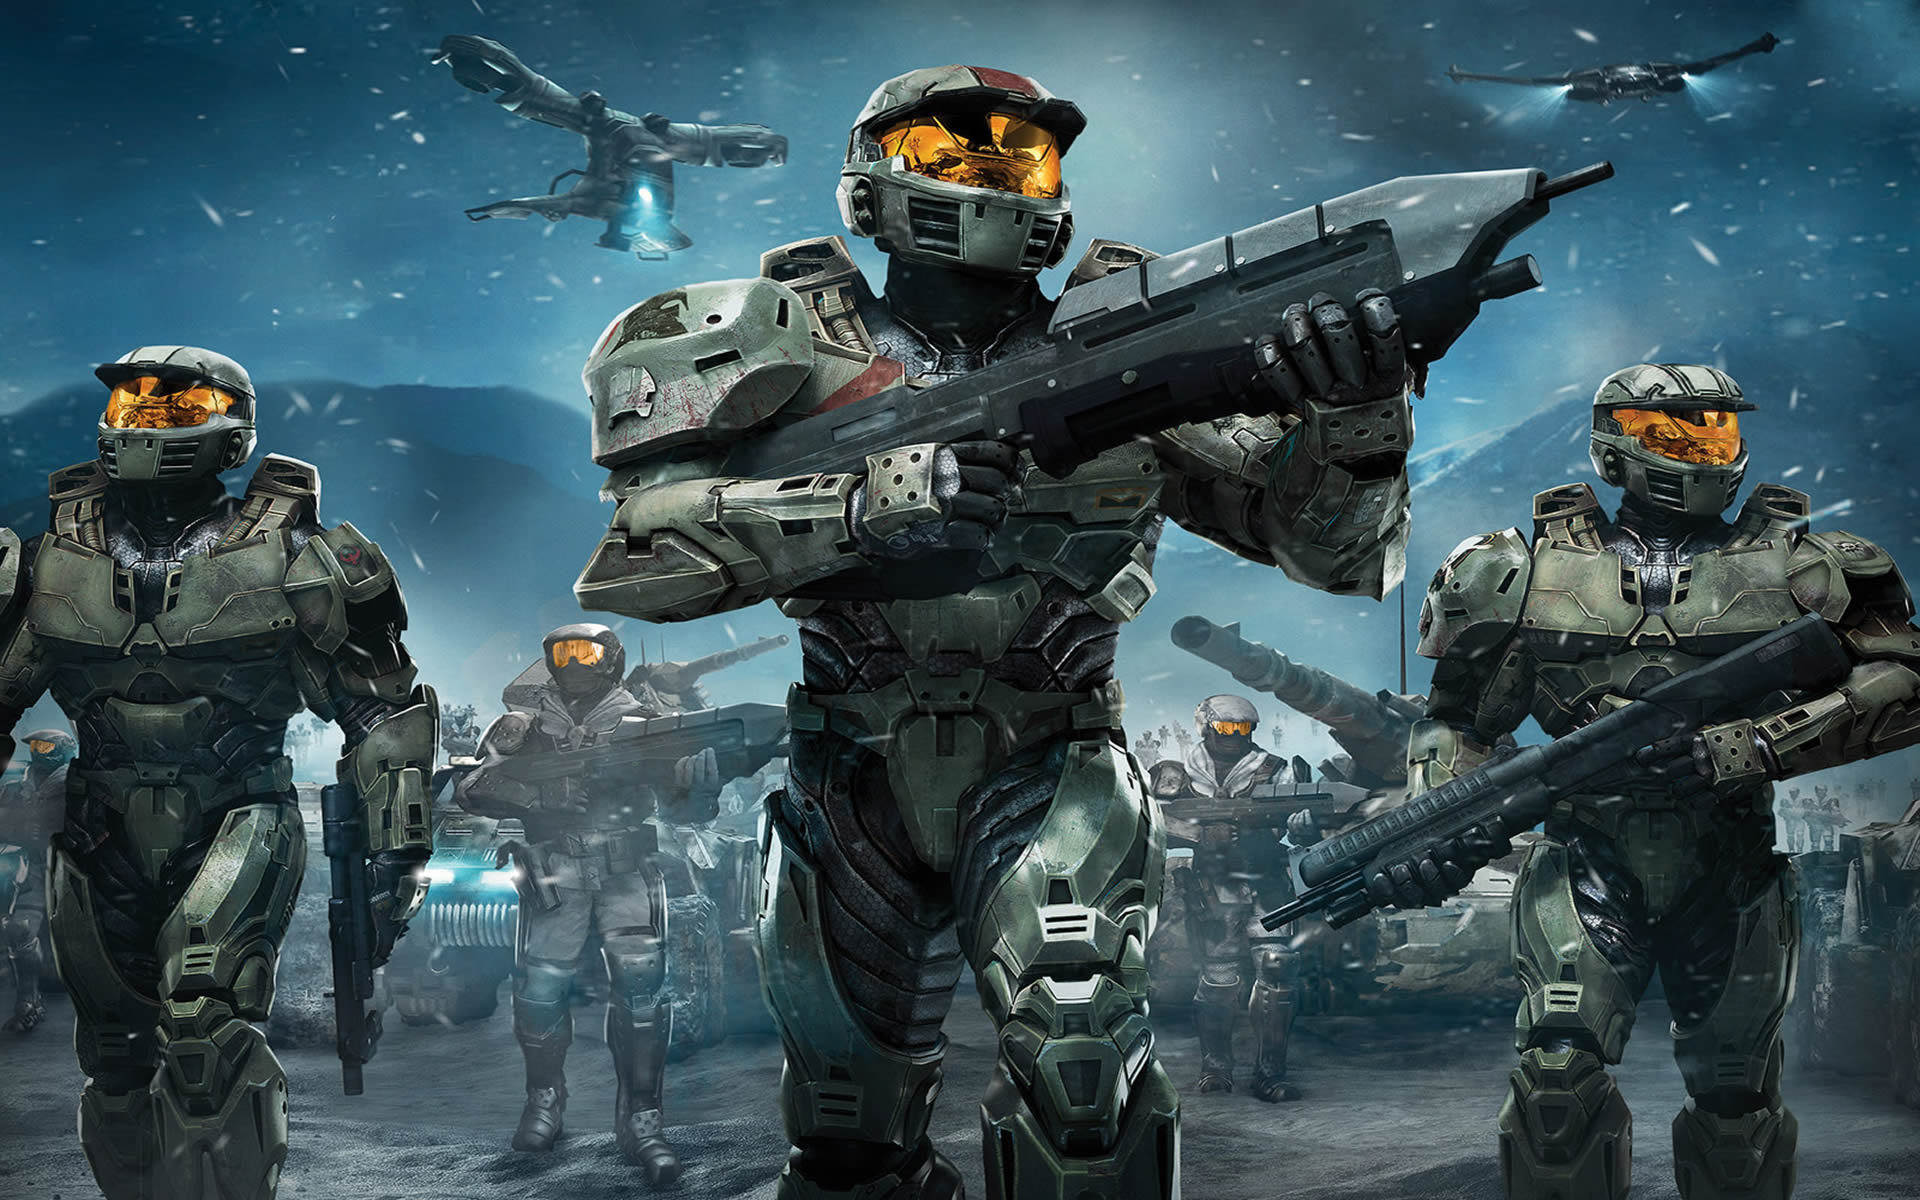 ... Space Command - Action Games Wallpaper Image featuring Halo Wars